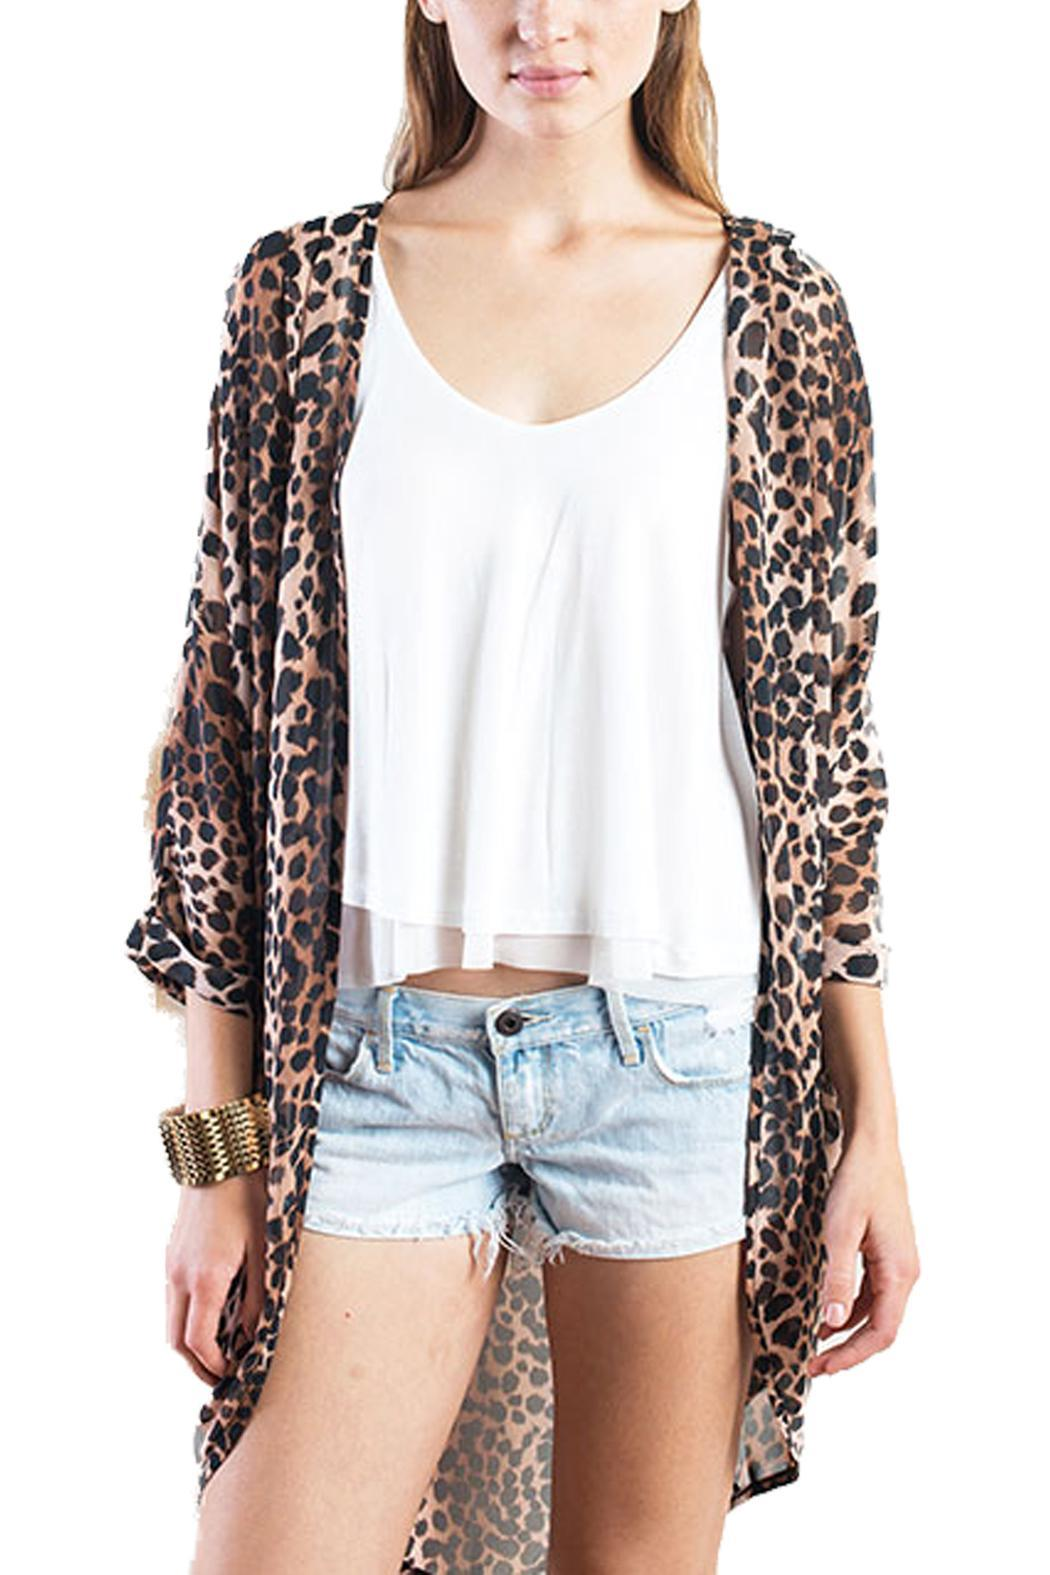 All about Me Leopard Kimono Cardigan from New Orleans by All About ...